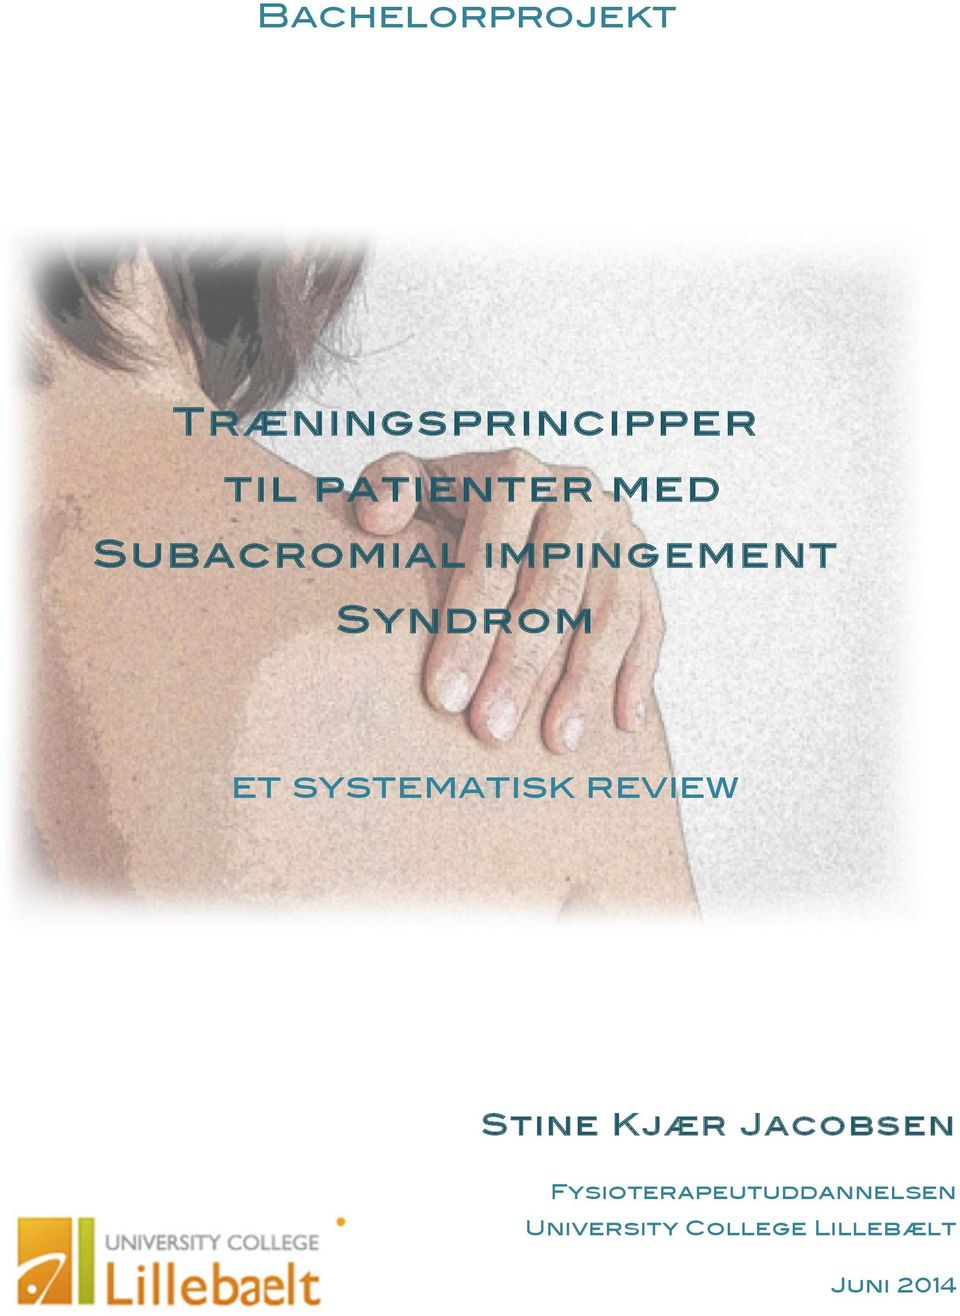 et systematisk review Stine Kjær Jacobsen